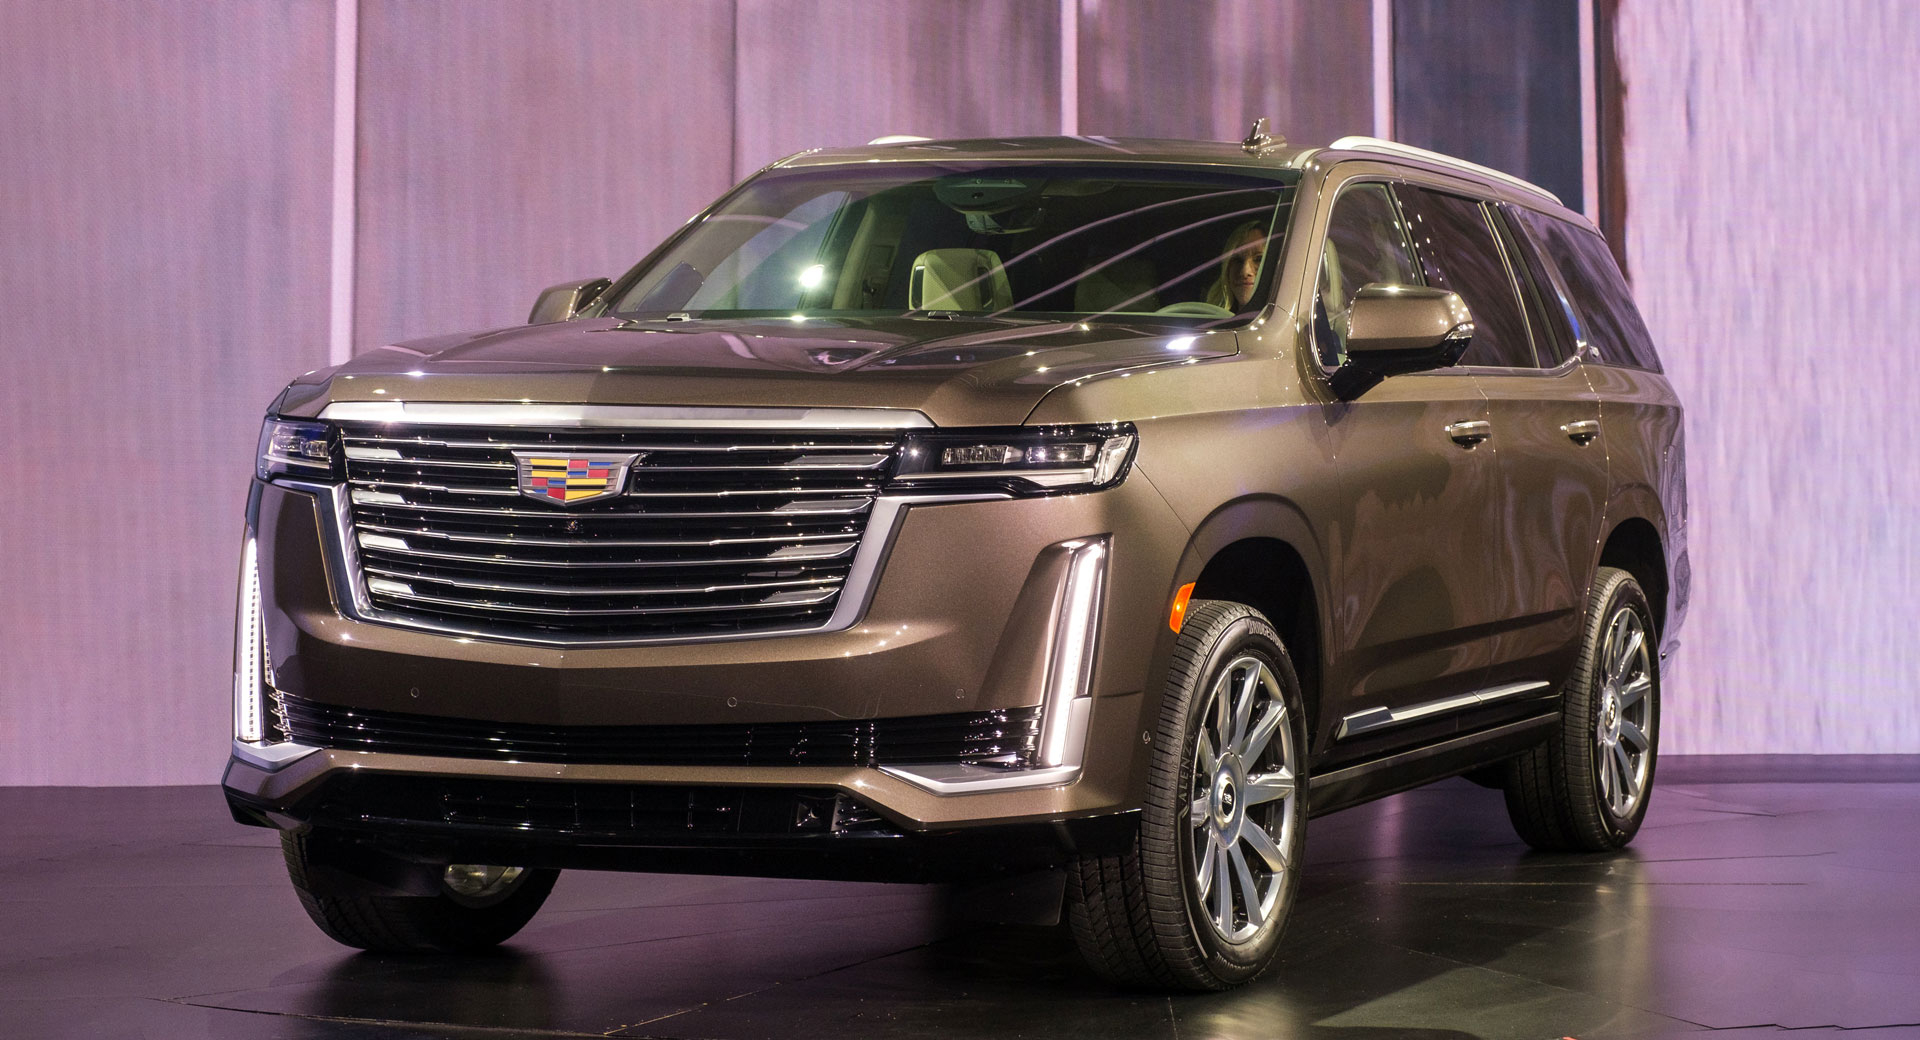 new 2021 cadillac escalade manual, new features, options